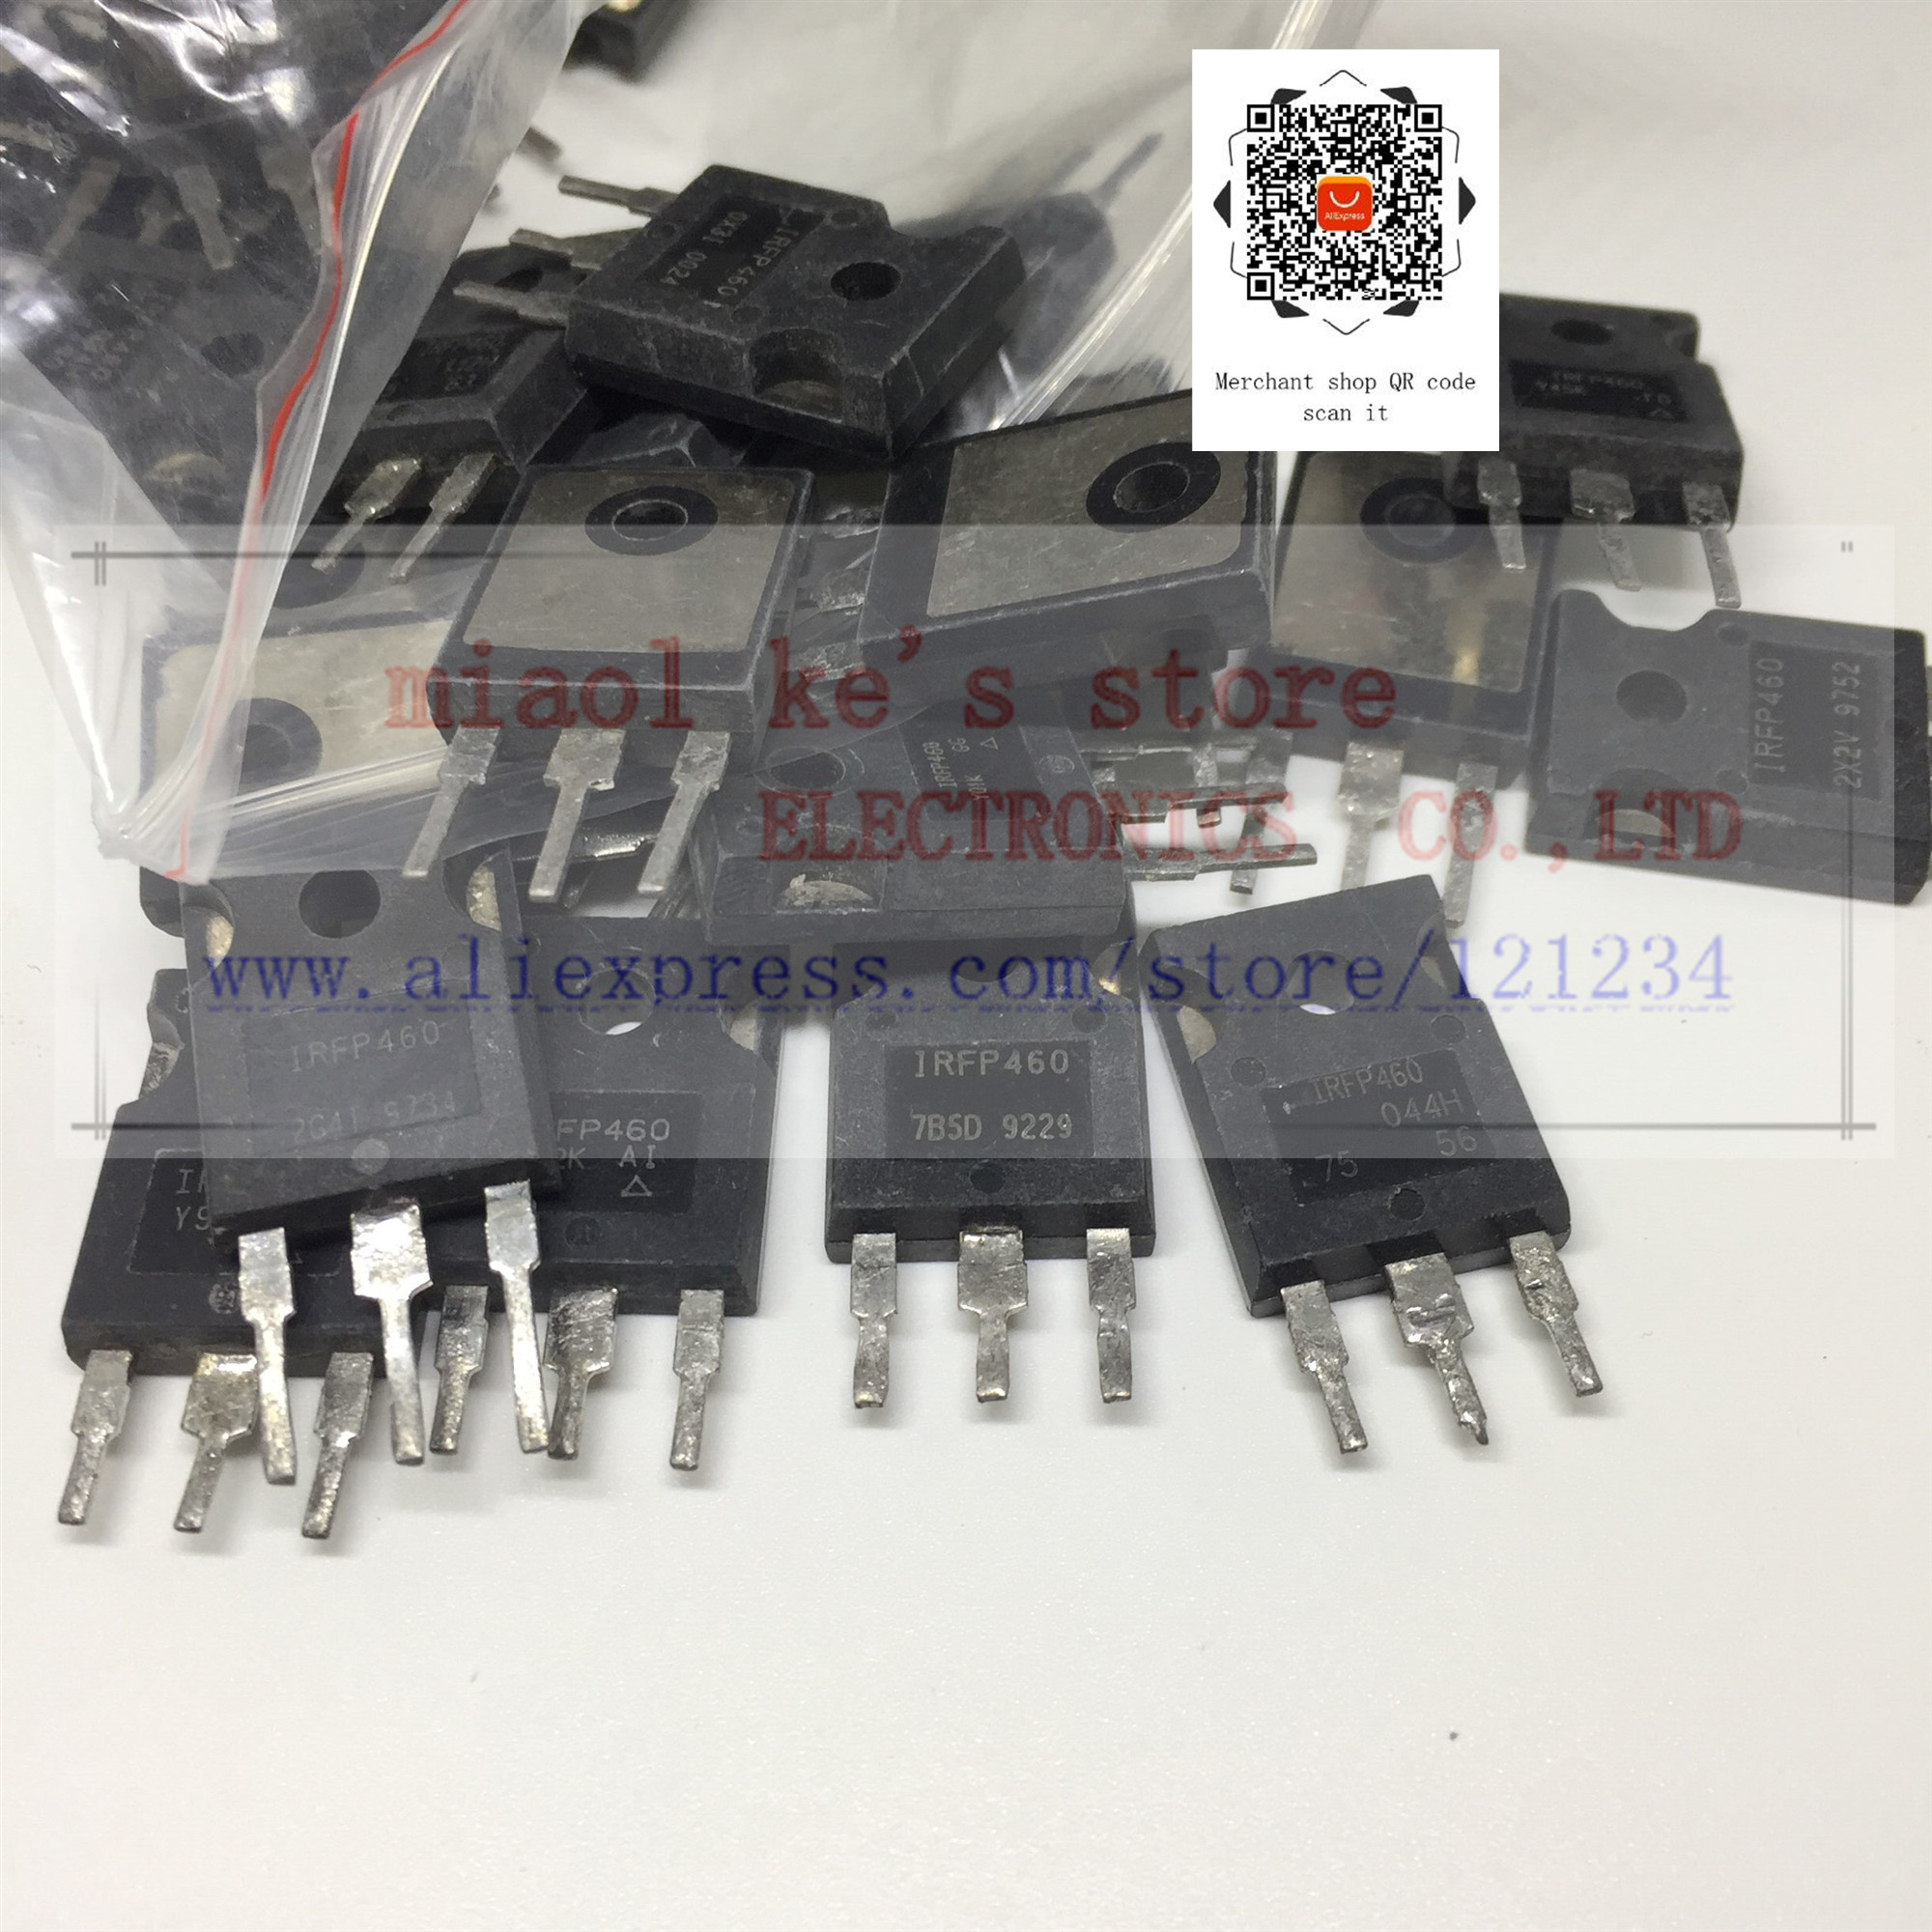 [ 50pcs/1lot ] IRFP460 IRFP460N IRFP460NPBF [ Used Goods ]- Through Hole MOSFET N-CH Pval(2068) 500V 20A 280W TO-247-3(TO-247AC)